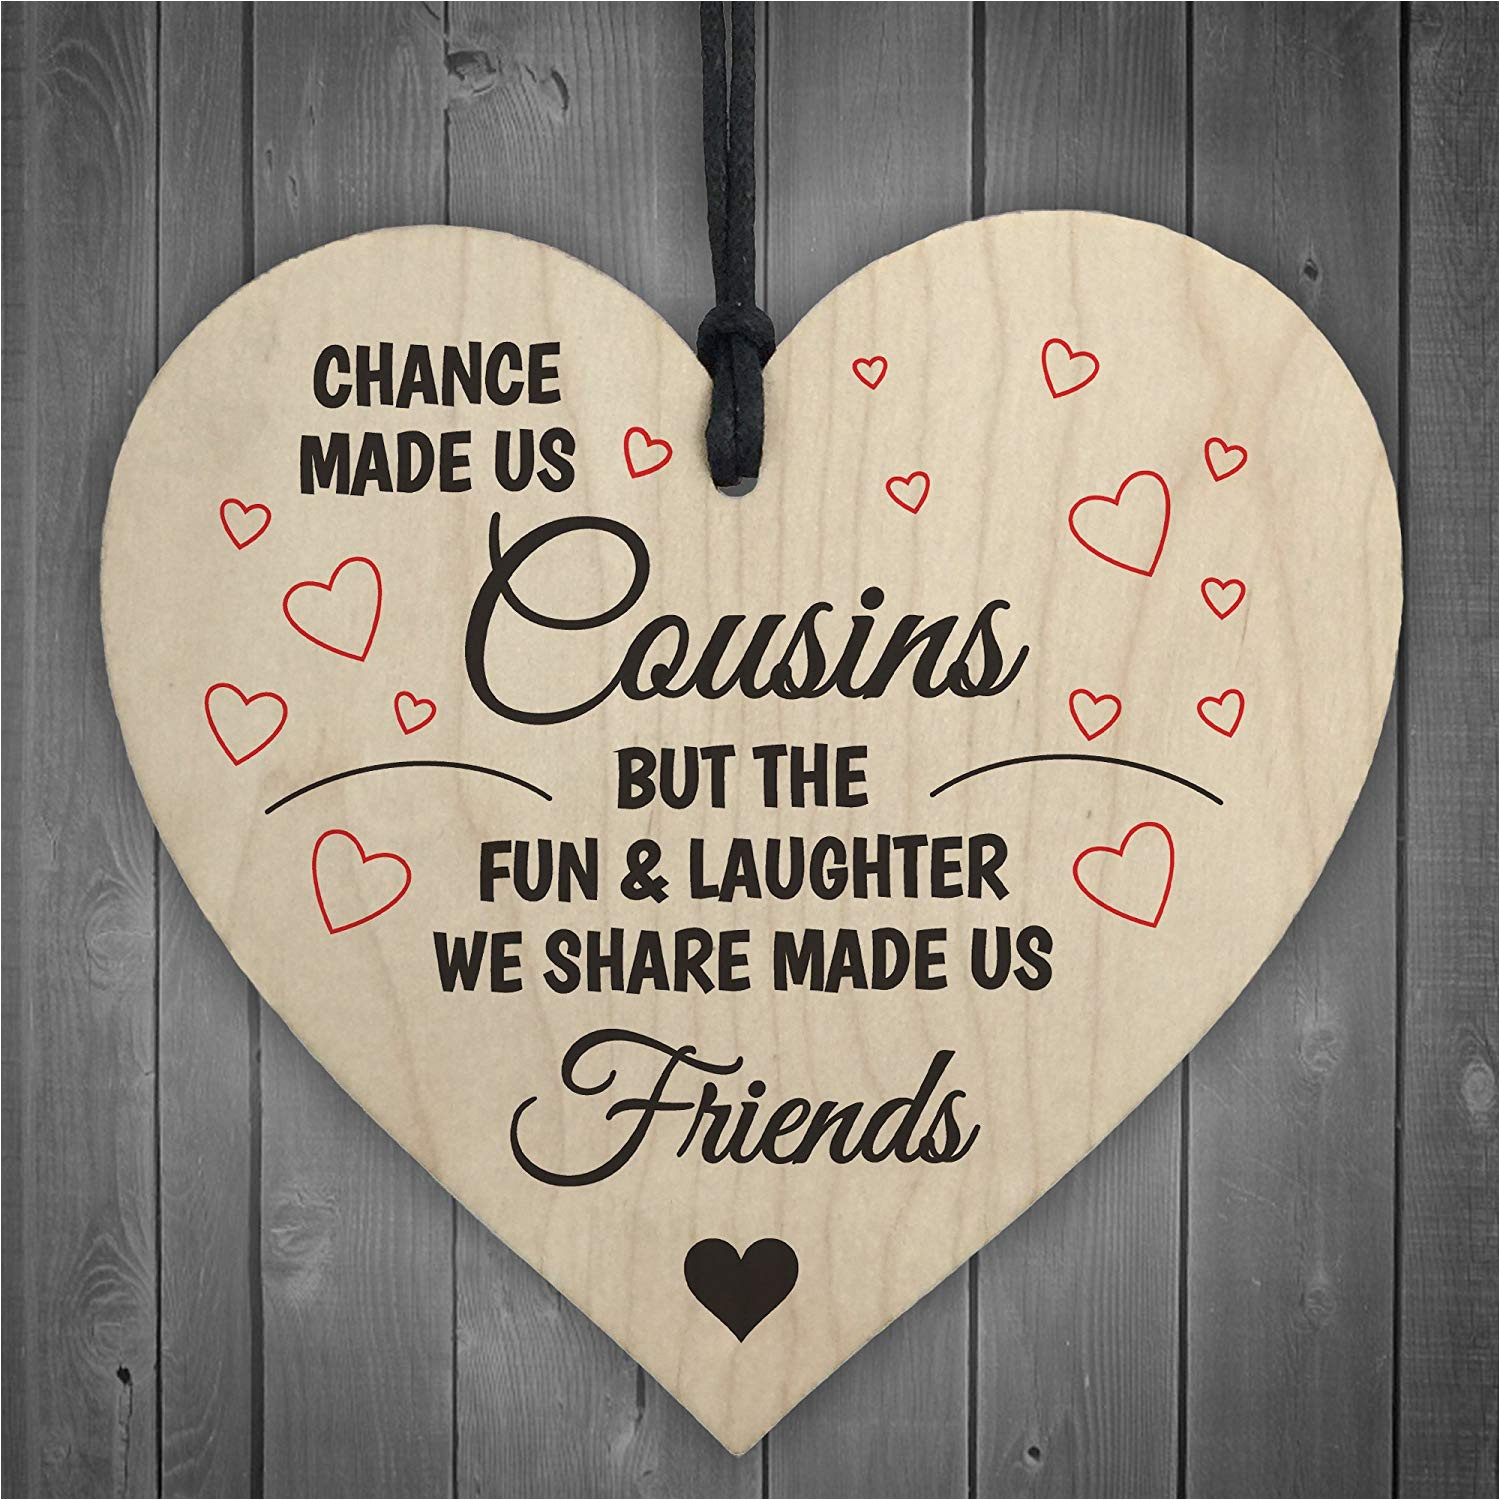 red ocean cousins fun laughter wooden hanging heart plaque sign friendship family love